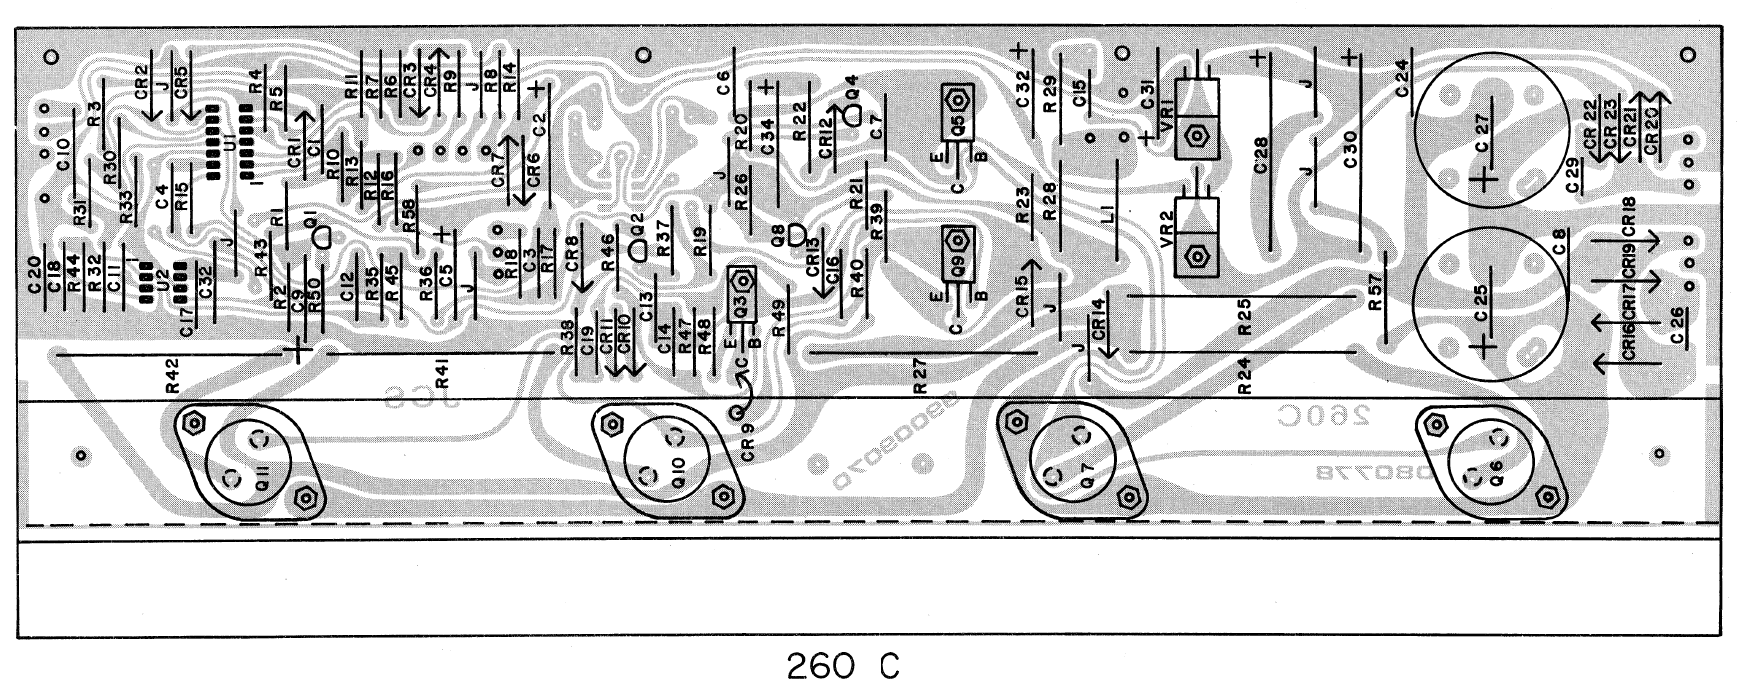 Click image for larger version.  Name:Peavey 260C layout.png Views:20 Size:603.5 KB ID:51548